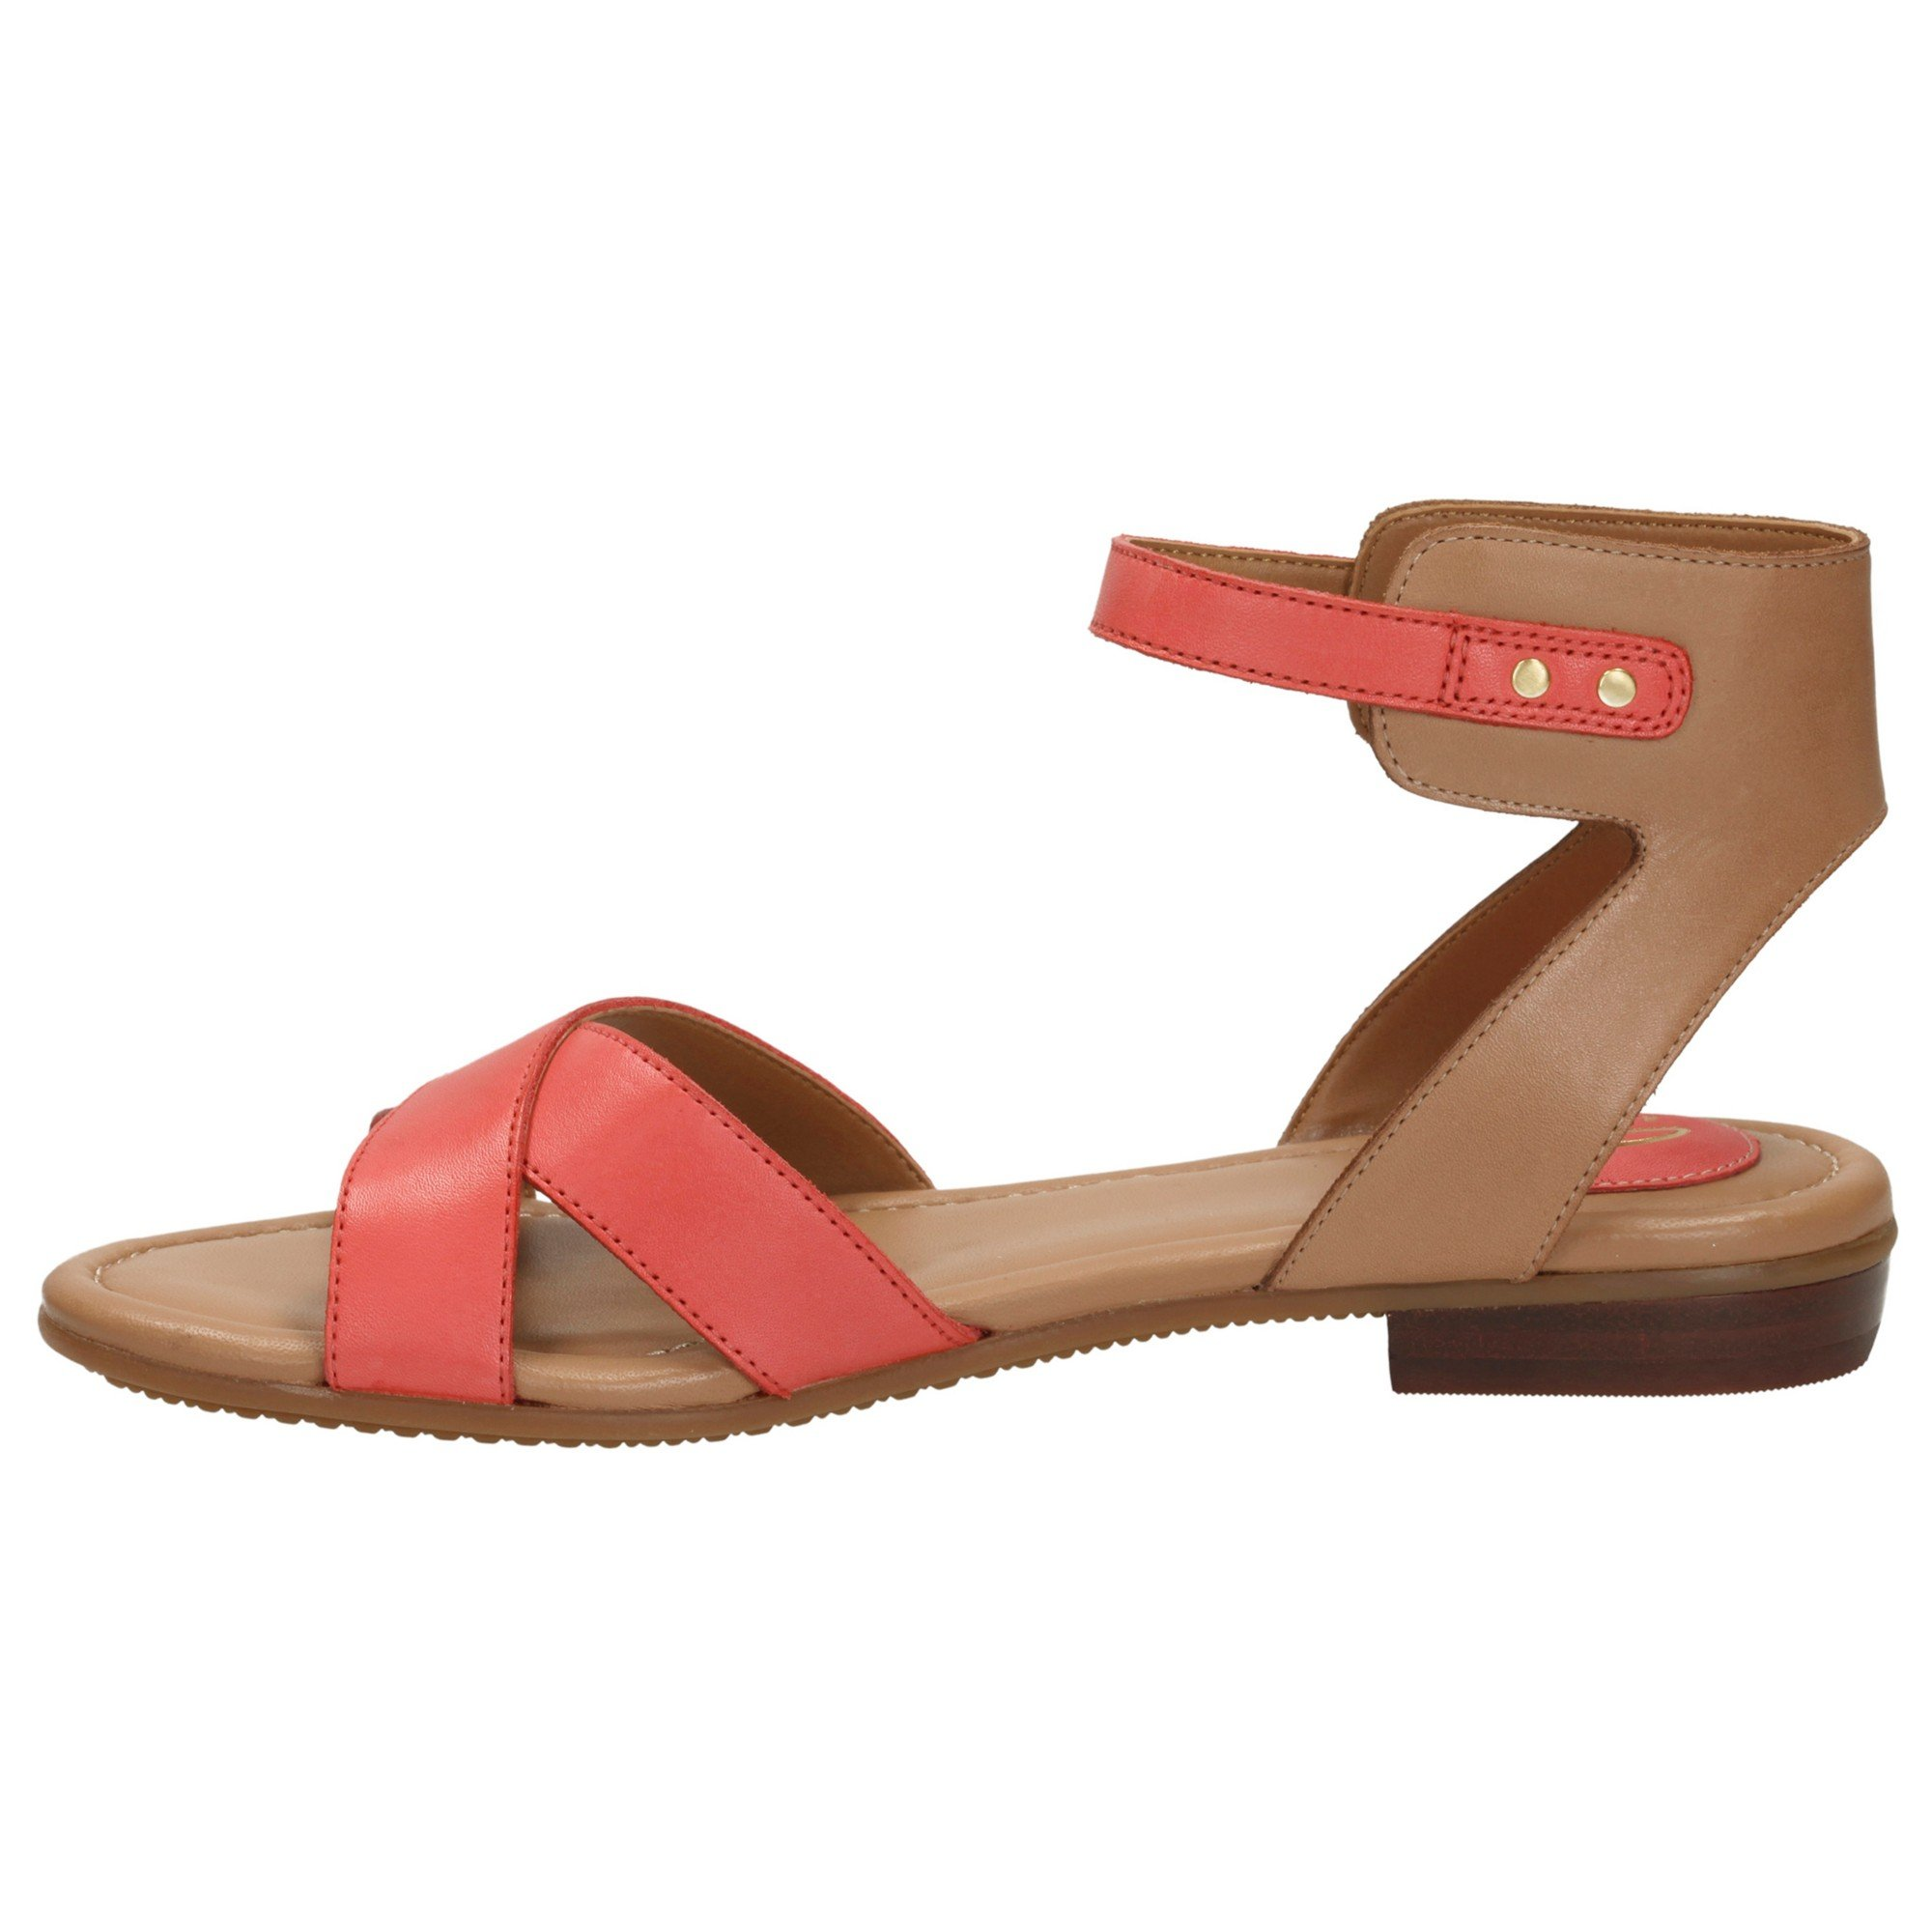 7263669392e8fe Clarks Viveca Zeal Leather Ankle Strap Sandals in Pink - Lyst